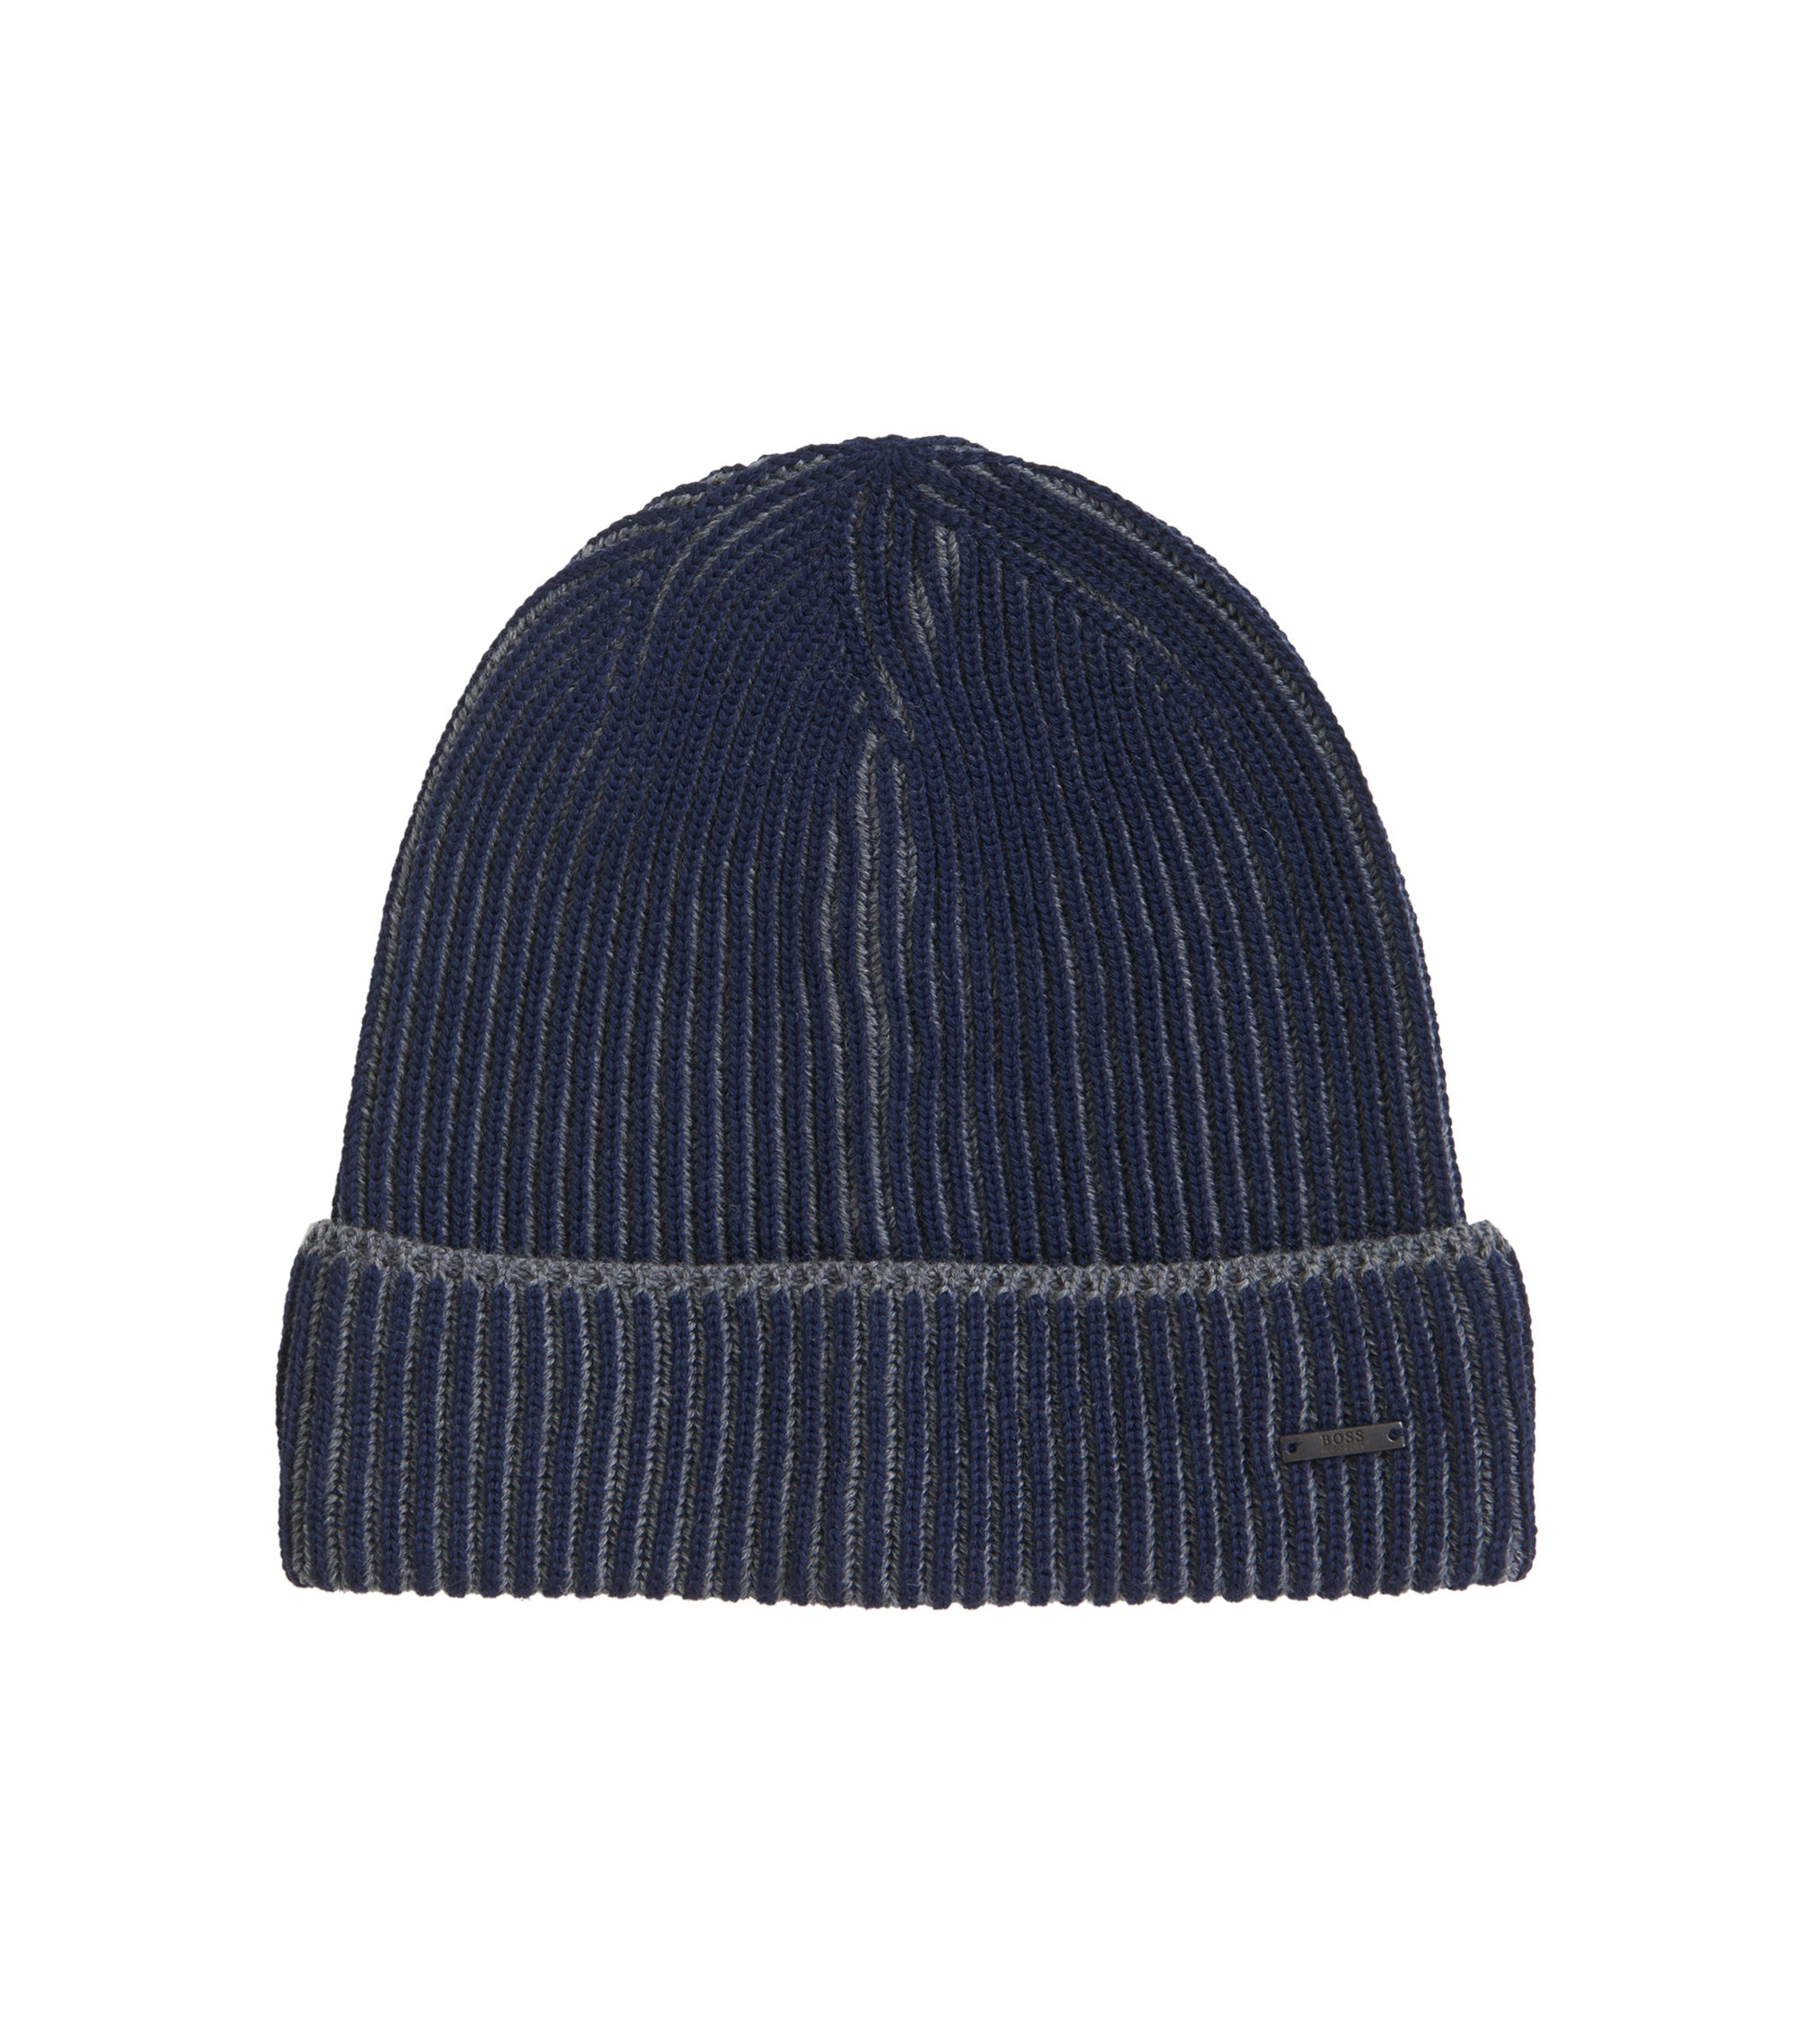 Virgin Wool Beanie | Balerio WS, Dark Blue